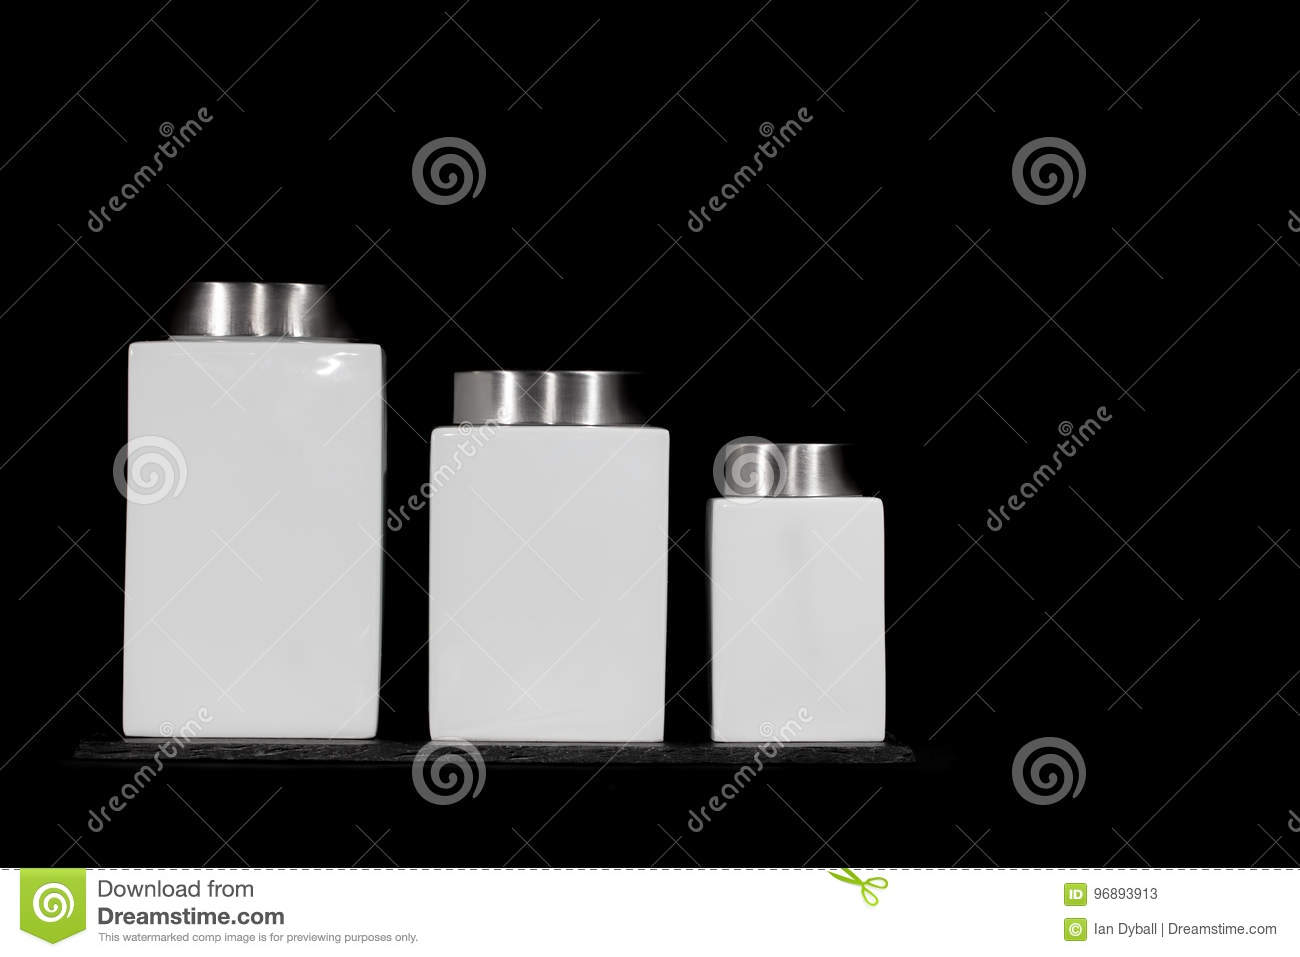 Modern minimalist kitchen storage jars square white ceramic canisters in modern design set of three sizes on slate coaster against black background with